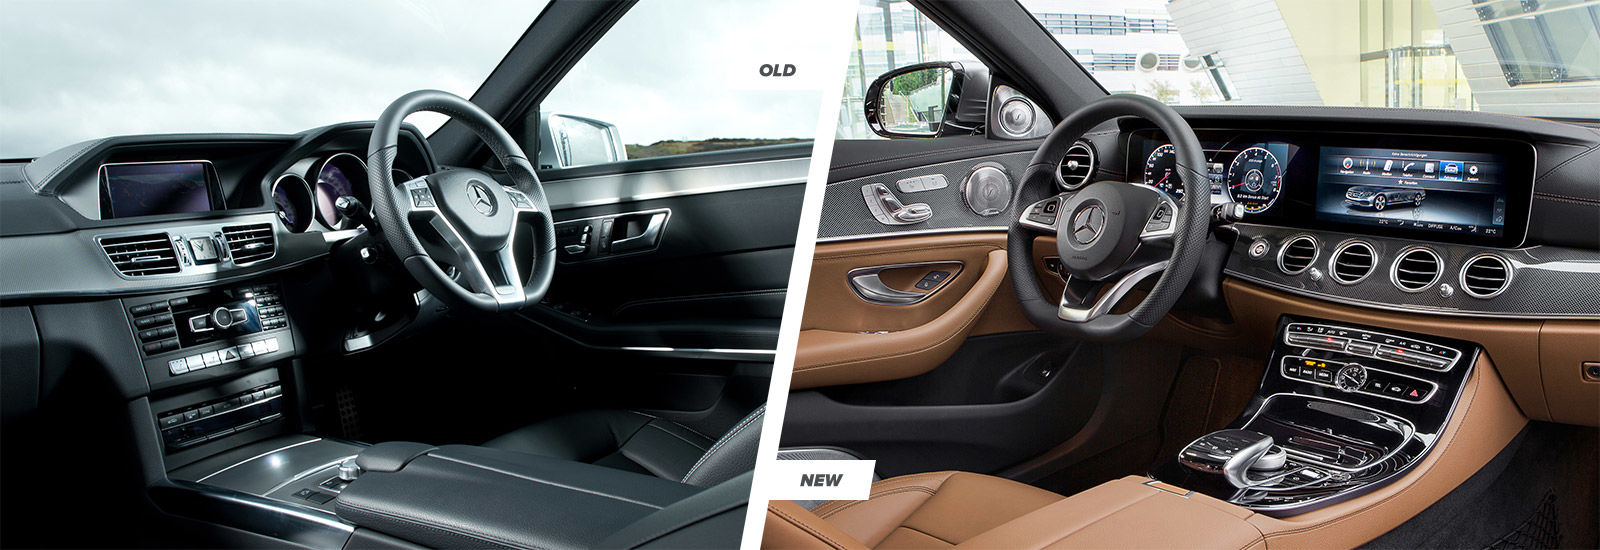 mercedes e class old vs new compared carwow. Black Bedroom Furniture Sets. Home Design Ideas